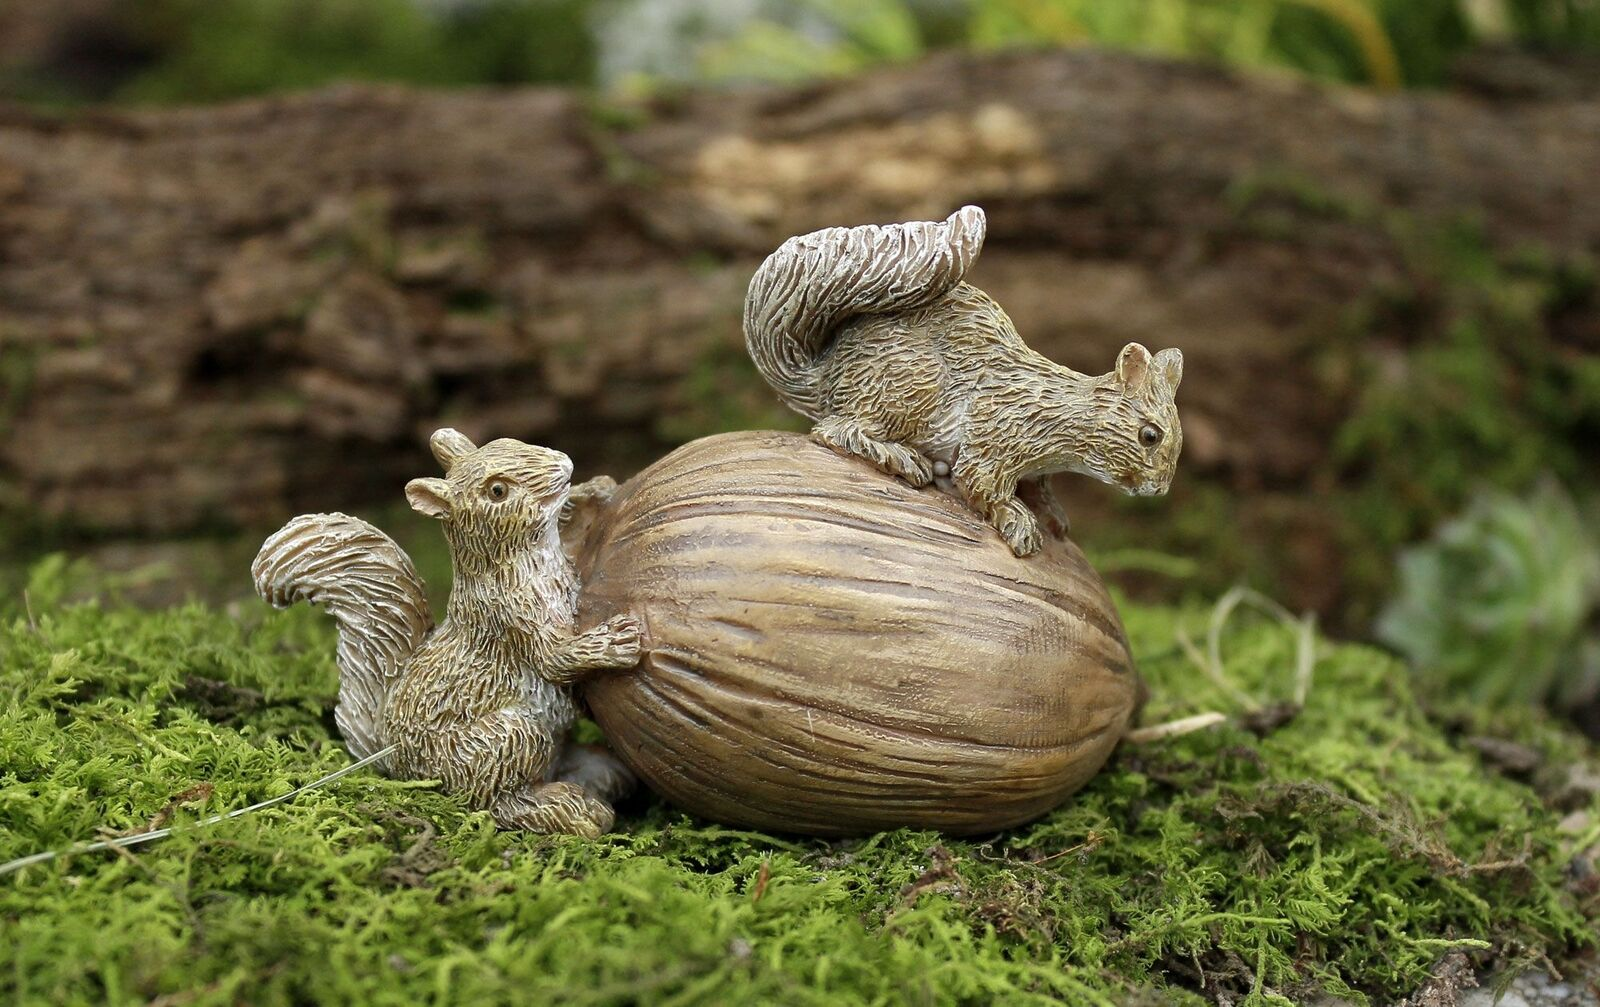 Miniature Fairy Garden Squirrels Delight Dollhouse Gnome Hobbit Mg51 ...